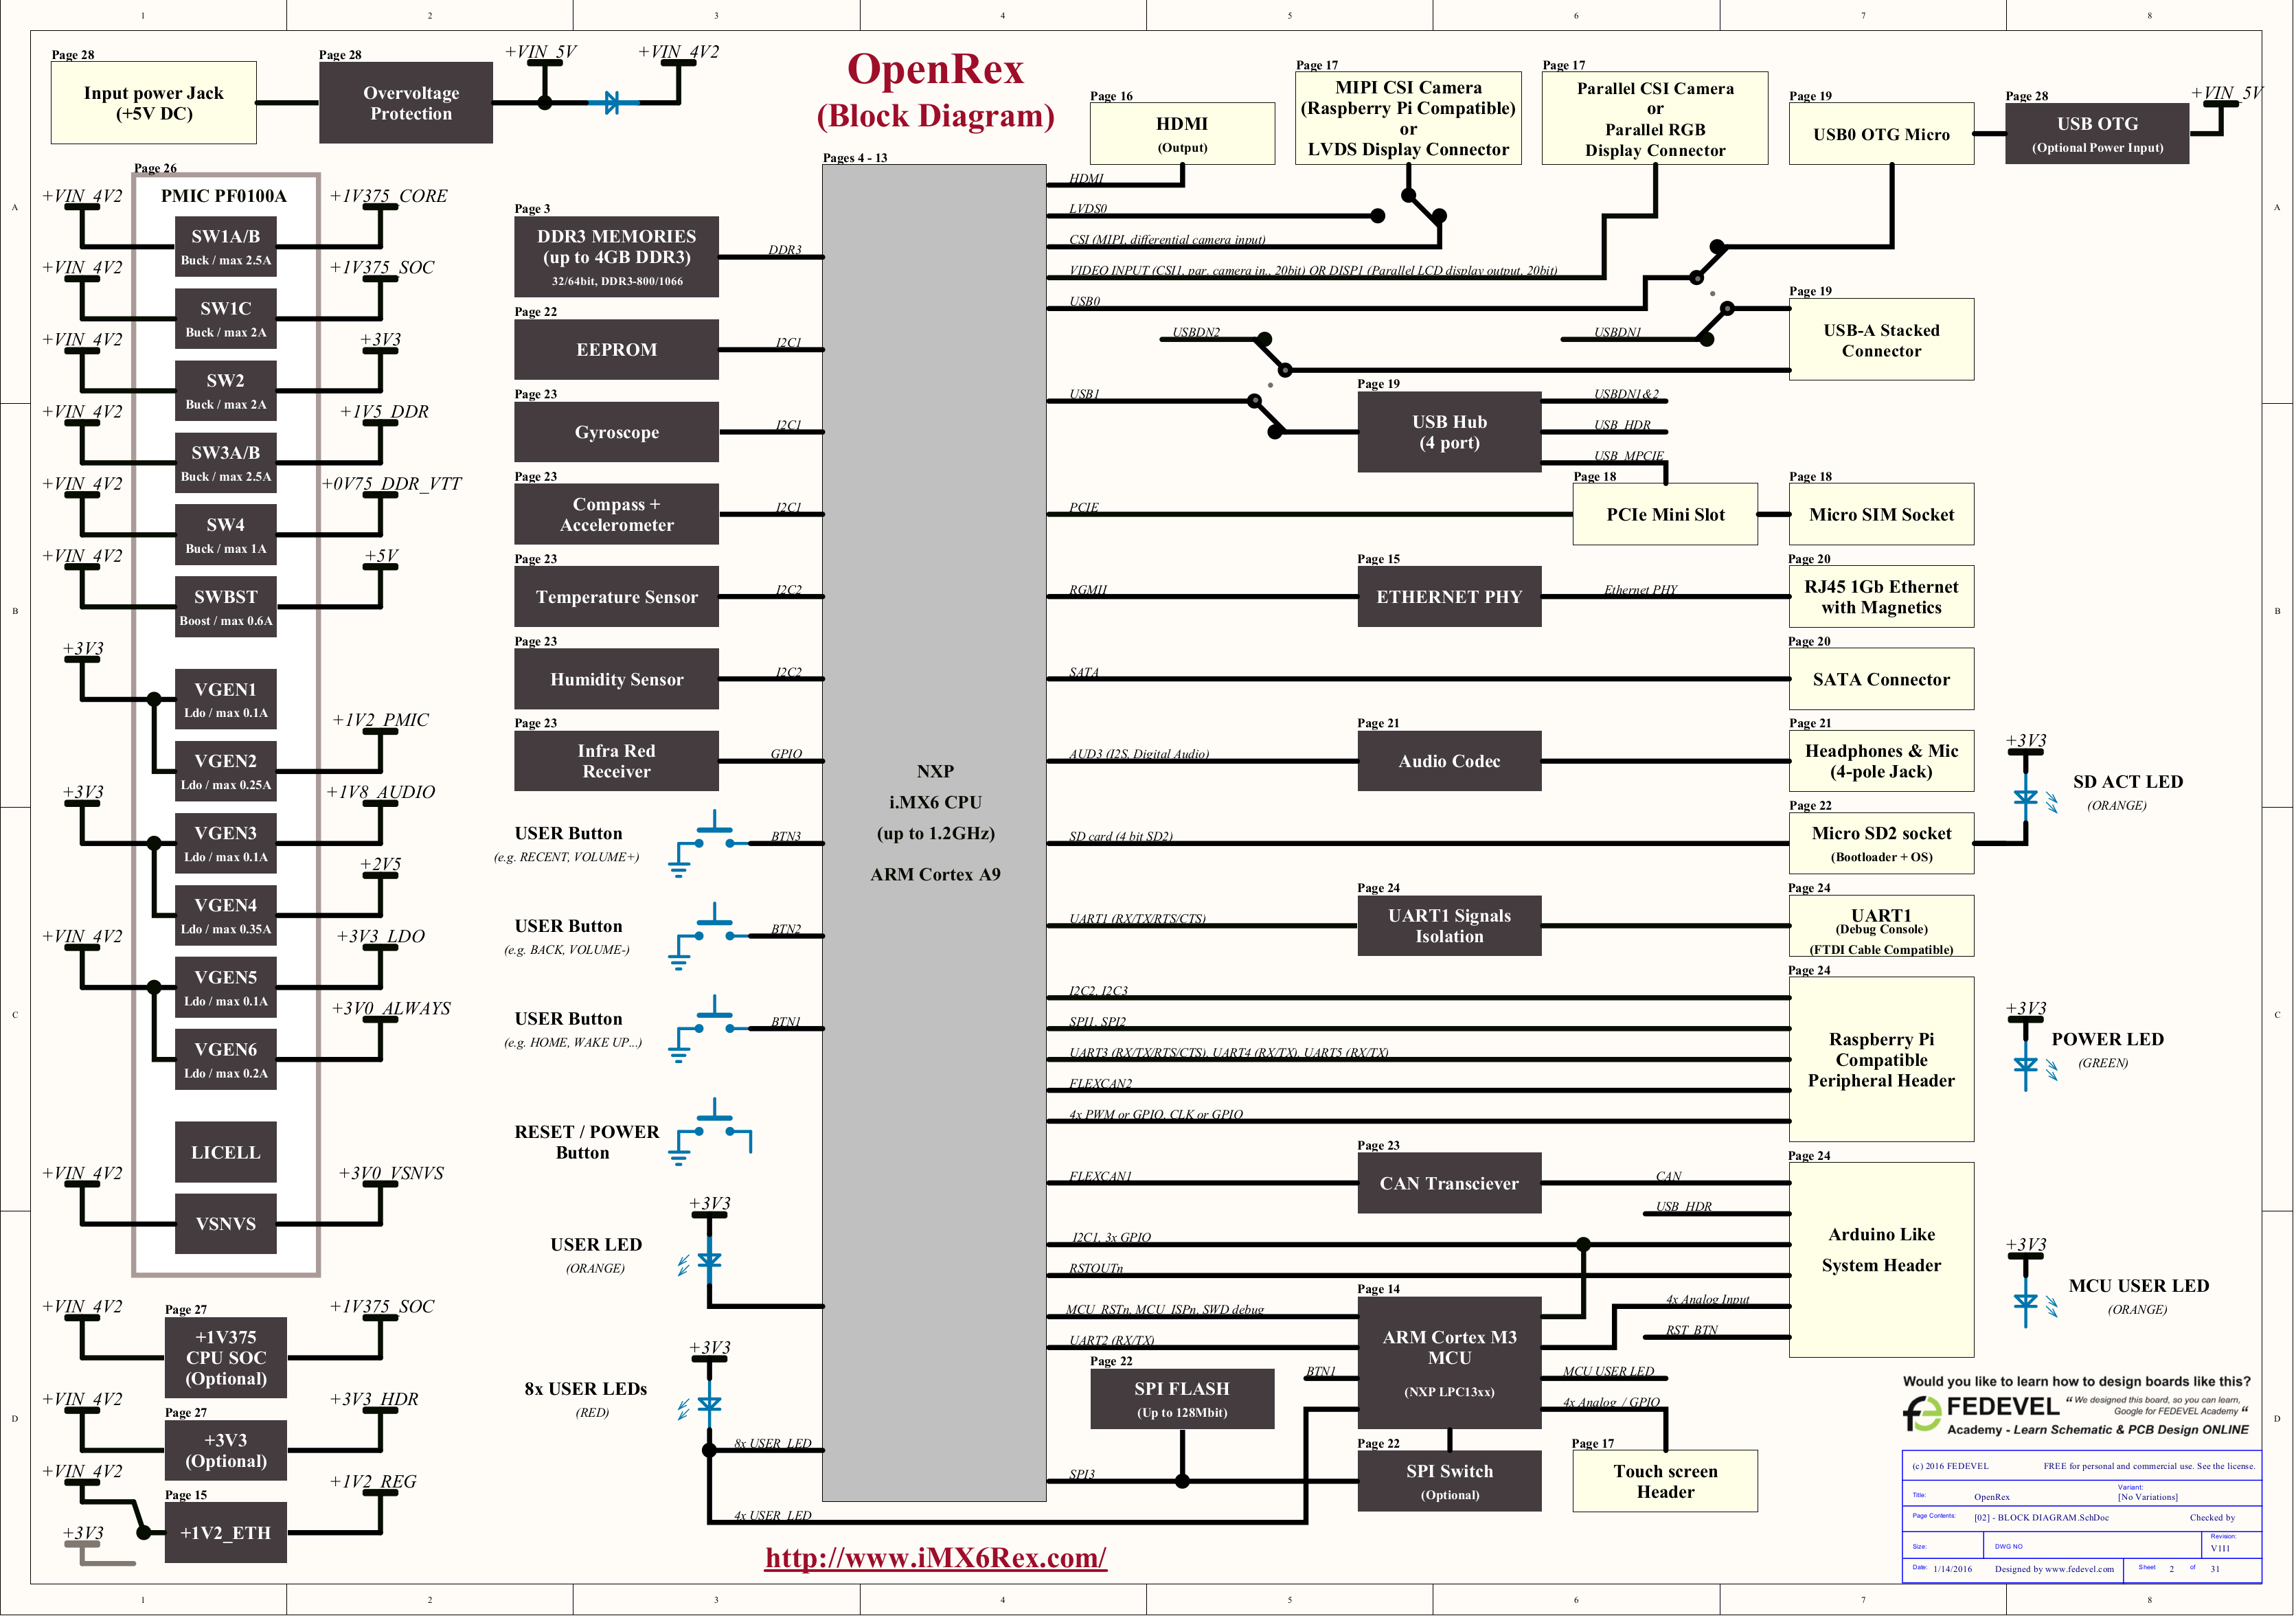 Openrex nxp i6 open source hardware board design files released openrex block diagram click to enlarge asfbconference2016 Gallery